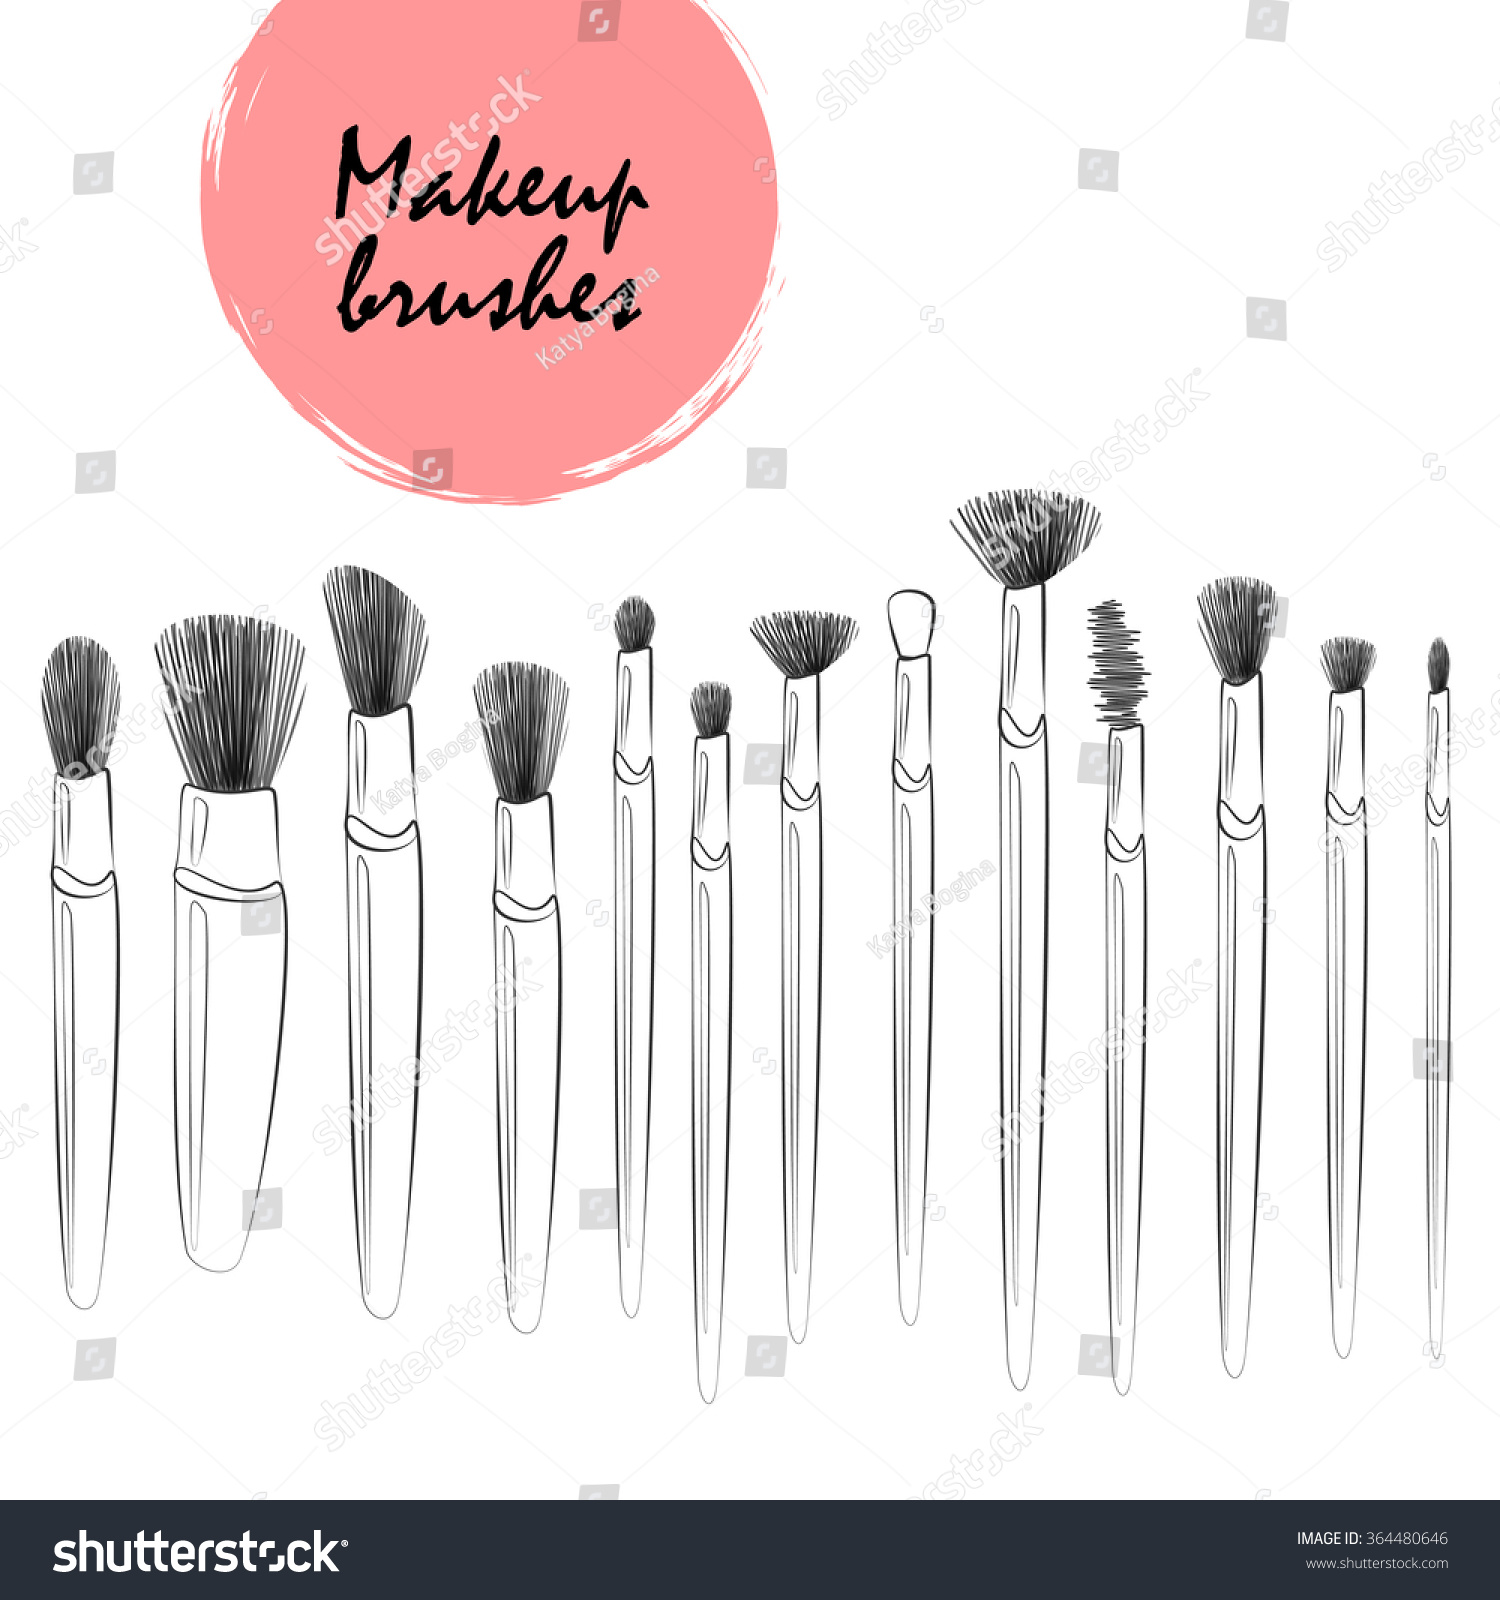 Drawing Straight Lines With Brush In Photo : Makeup tools vector pixshark images galleries